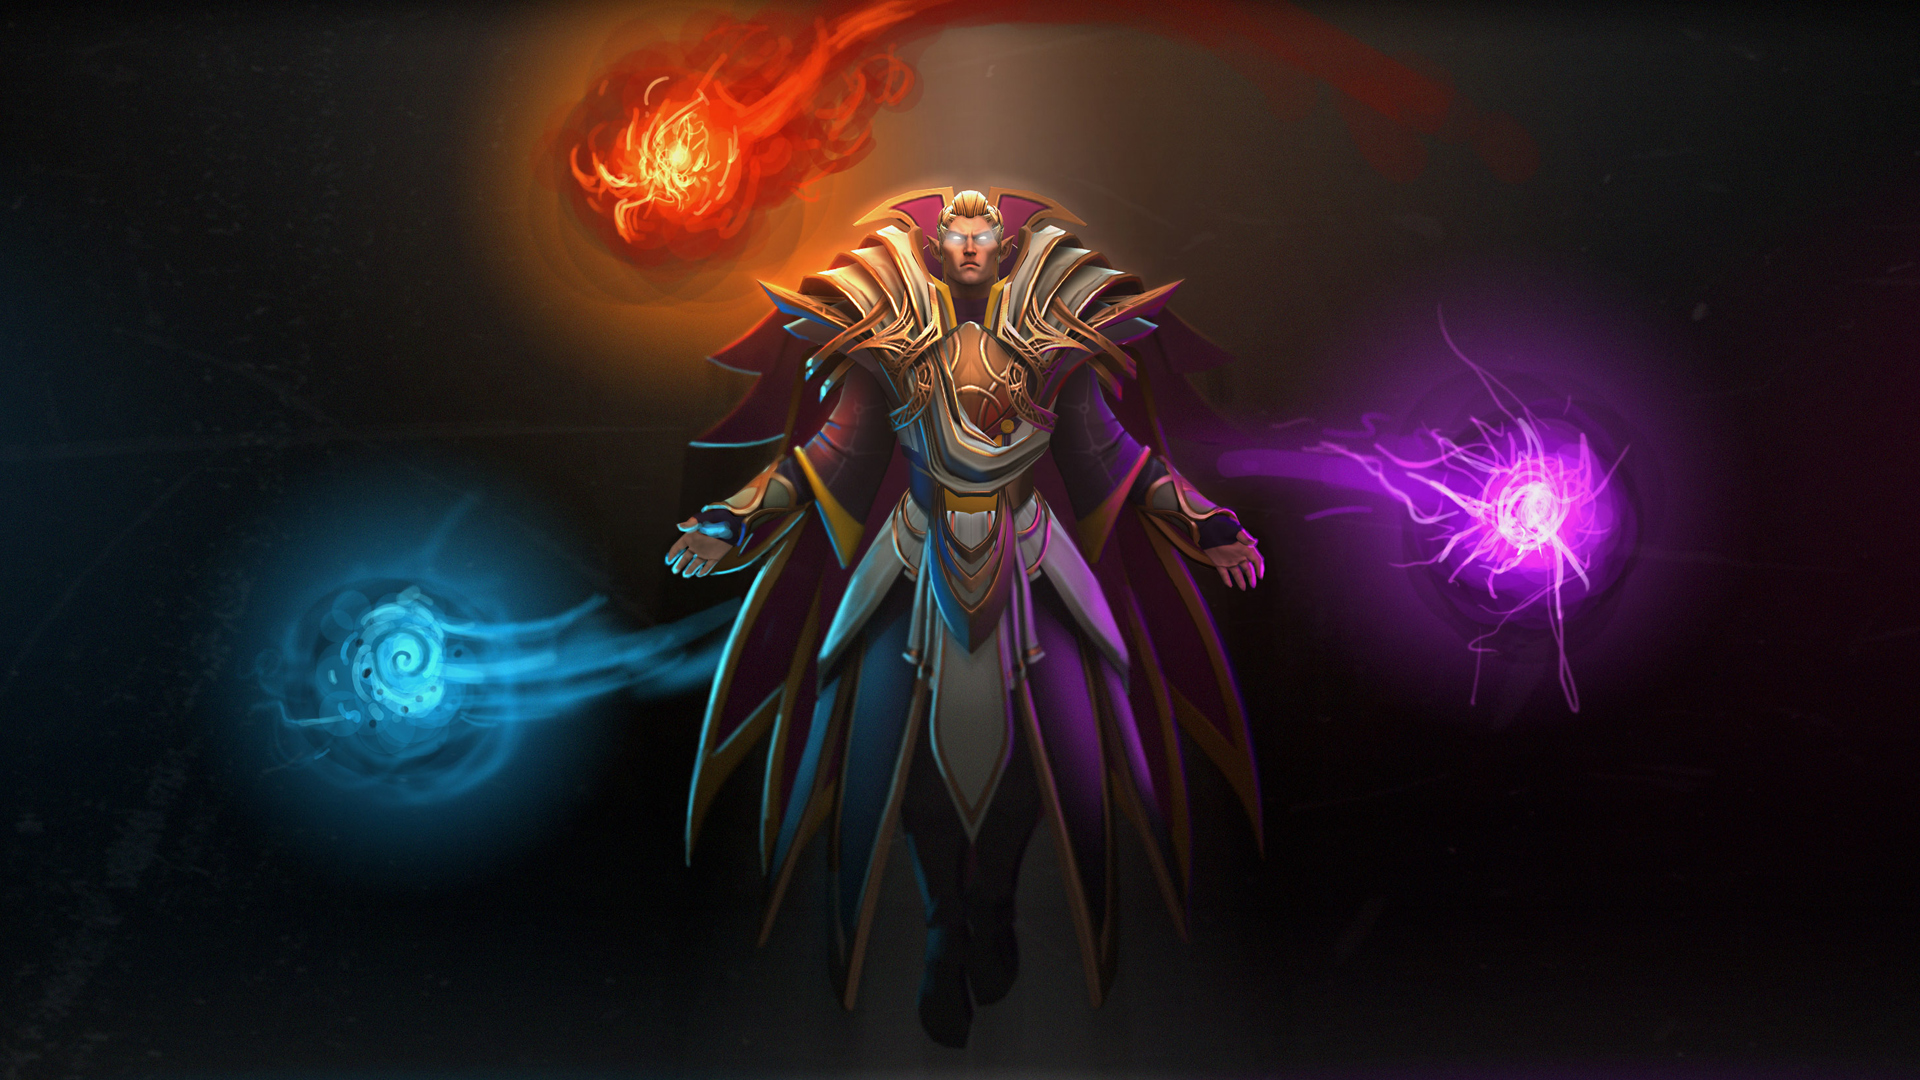 Invoker Dota 2 1080p 3d Wallpaper HD